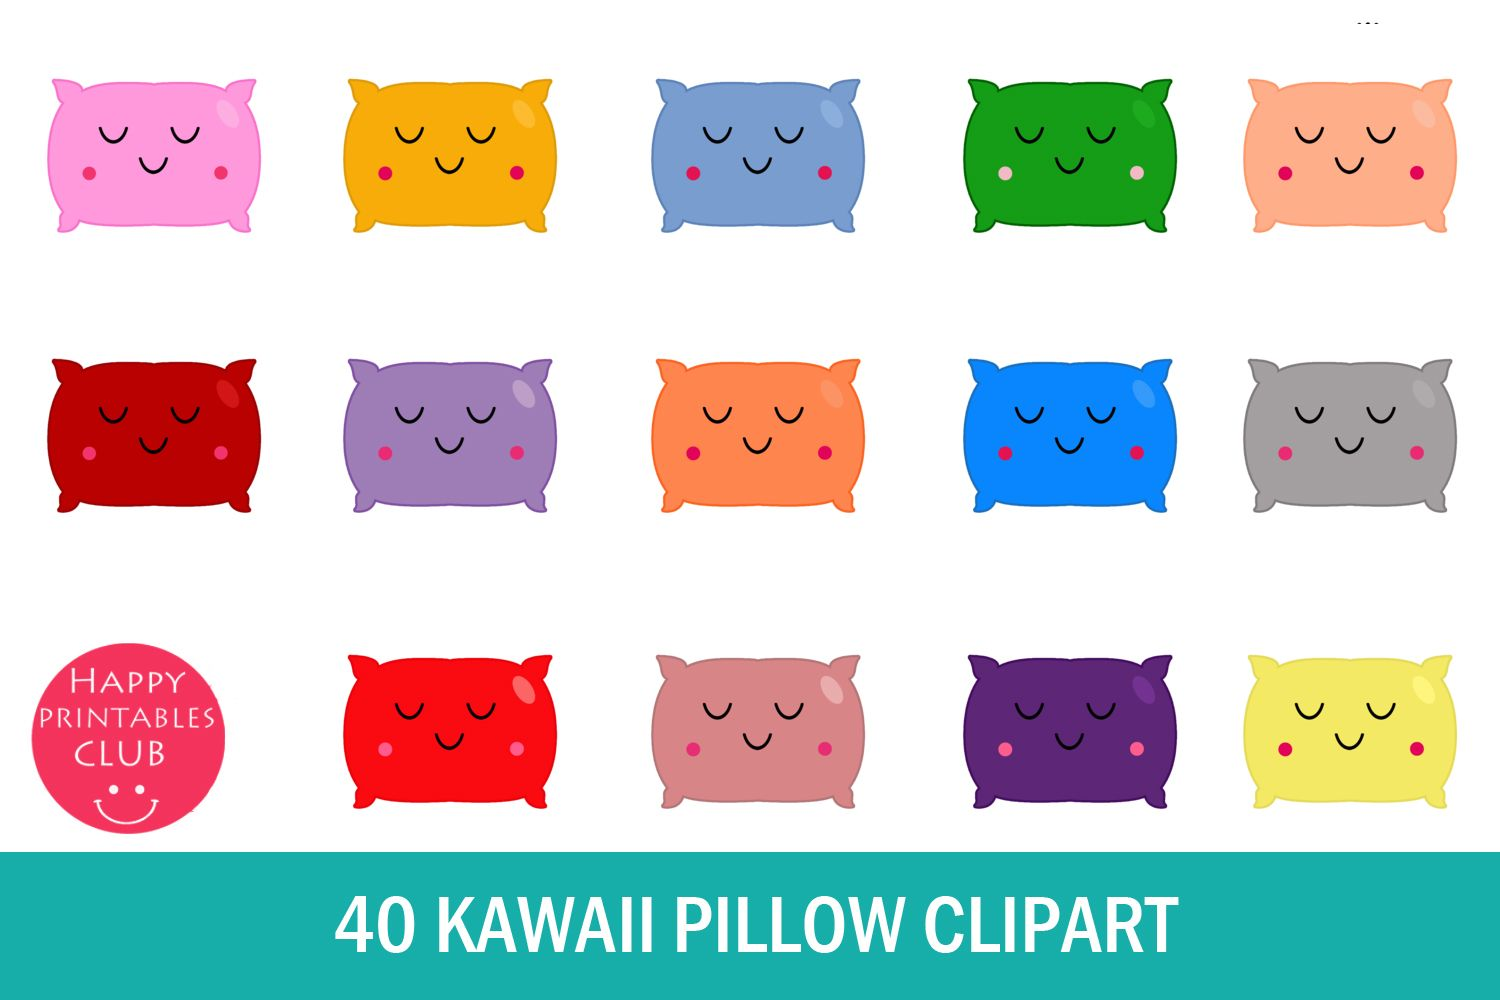 Kawaii Pillow Clipart Cute Pillow Png Graphic By Happy Printables Club Creative Fabrica